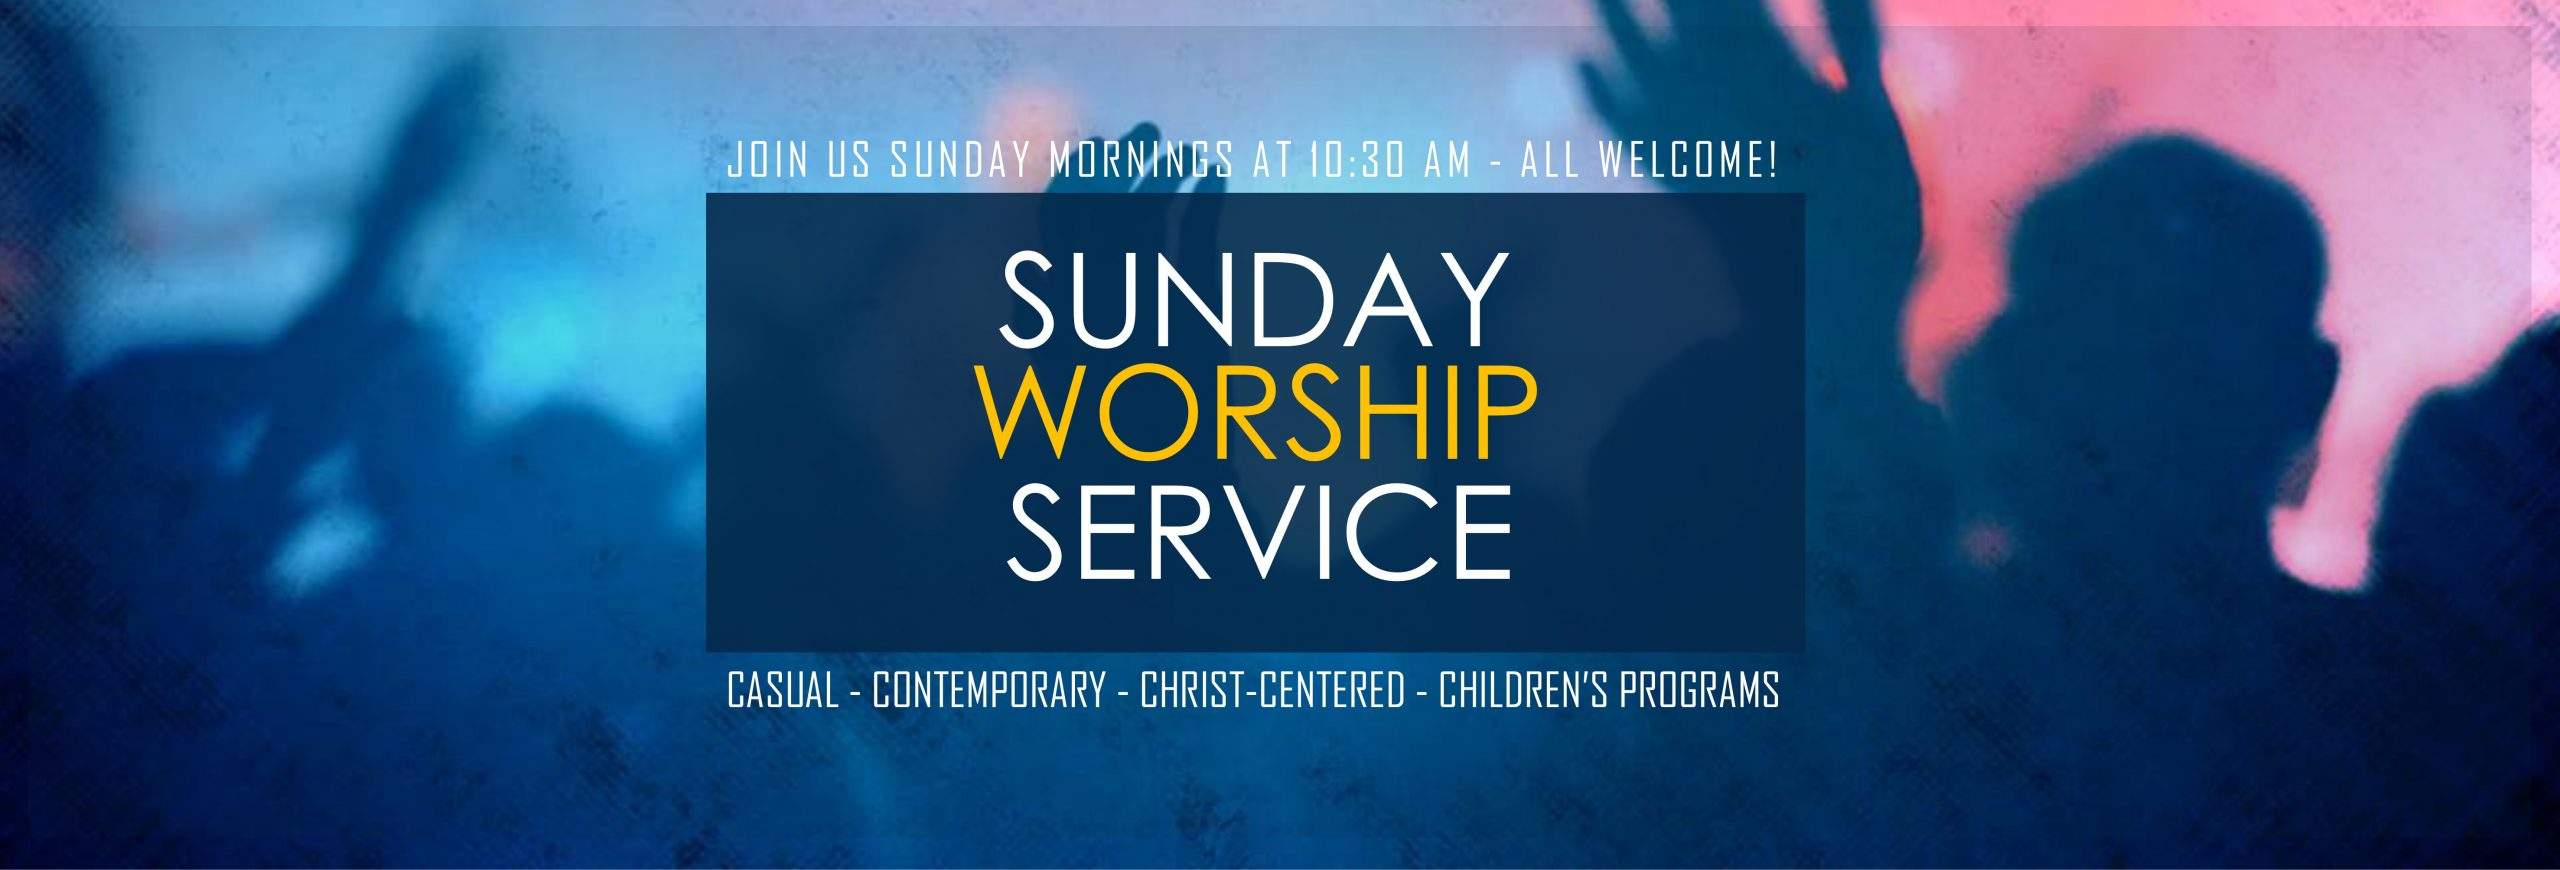 PLEASE NOTE: SUNDAY WORSHIP UNTIL FURTHER NOTICE WILL BE LIVE-STREAM ONLY